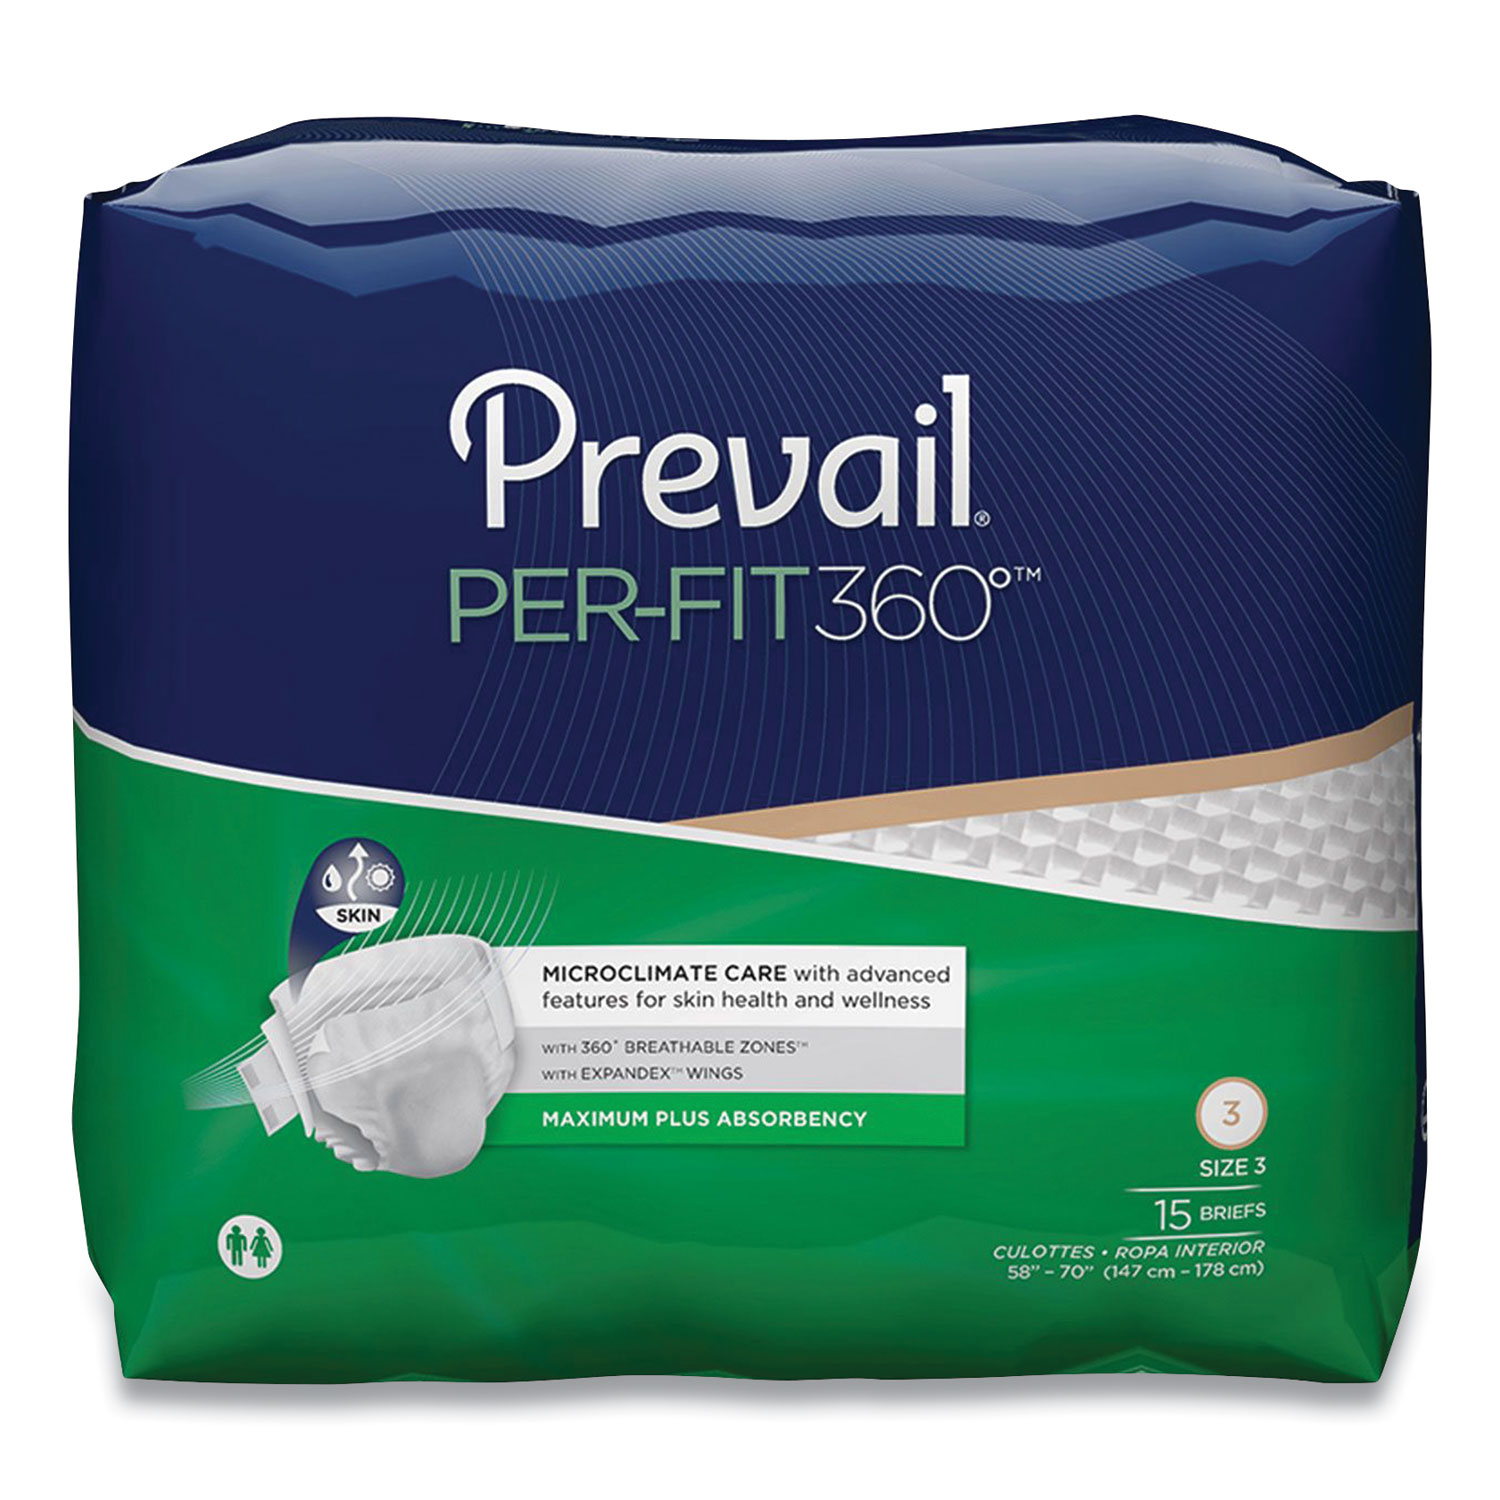 Prevail® Per-Fit360 Degree Briefs, Maximum Plus Absorbency, Size 3, 58 to 70 Waist, 60/Carton